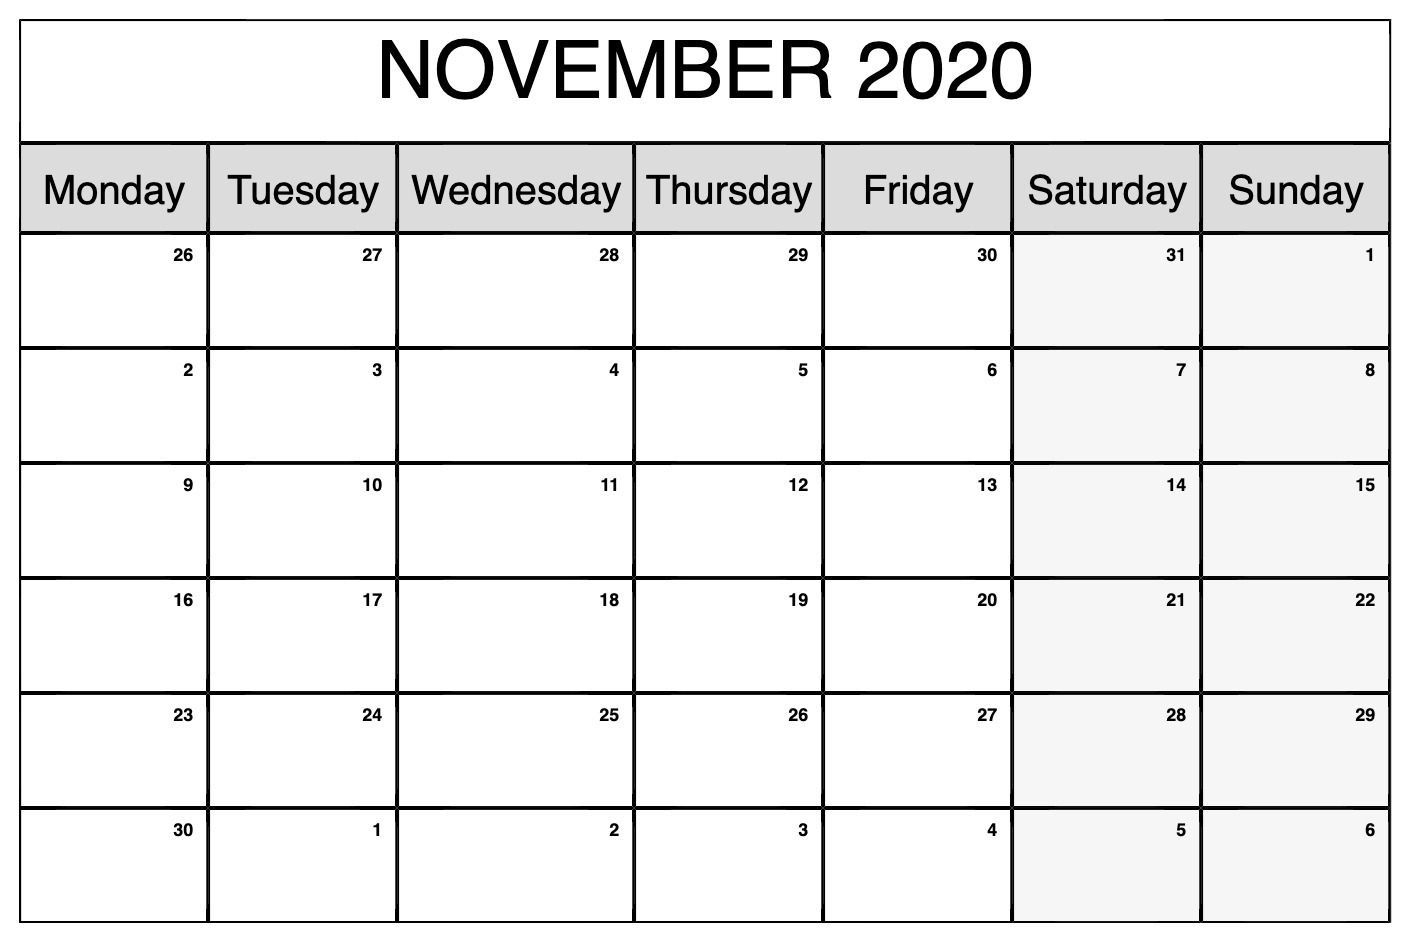 Dashing Monthly Monday To Sunday Calendars 2020 Printable